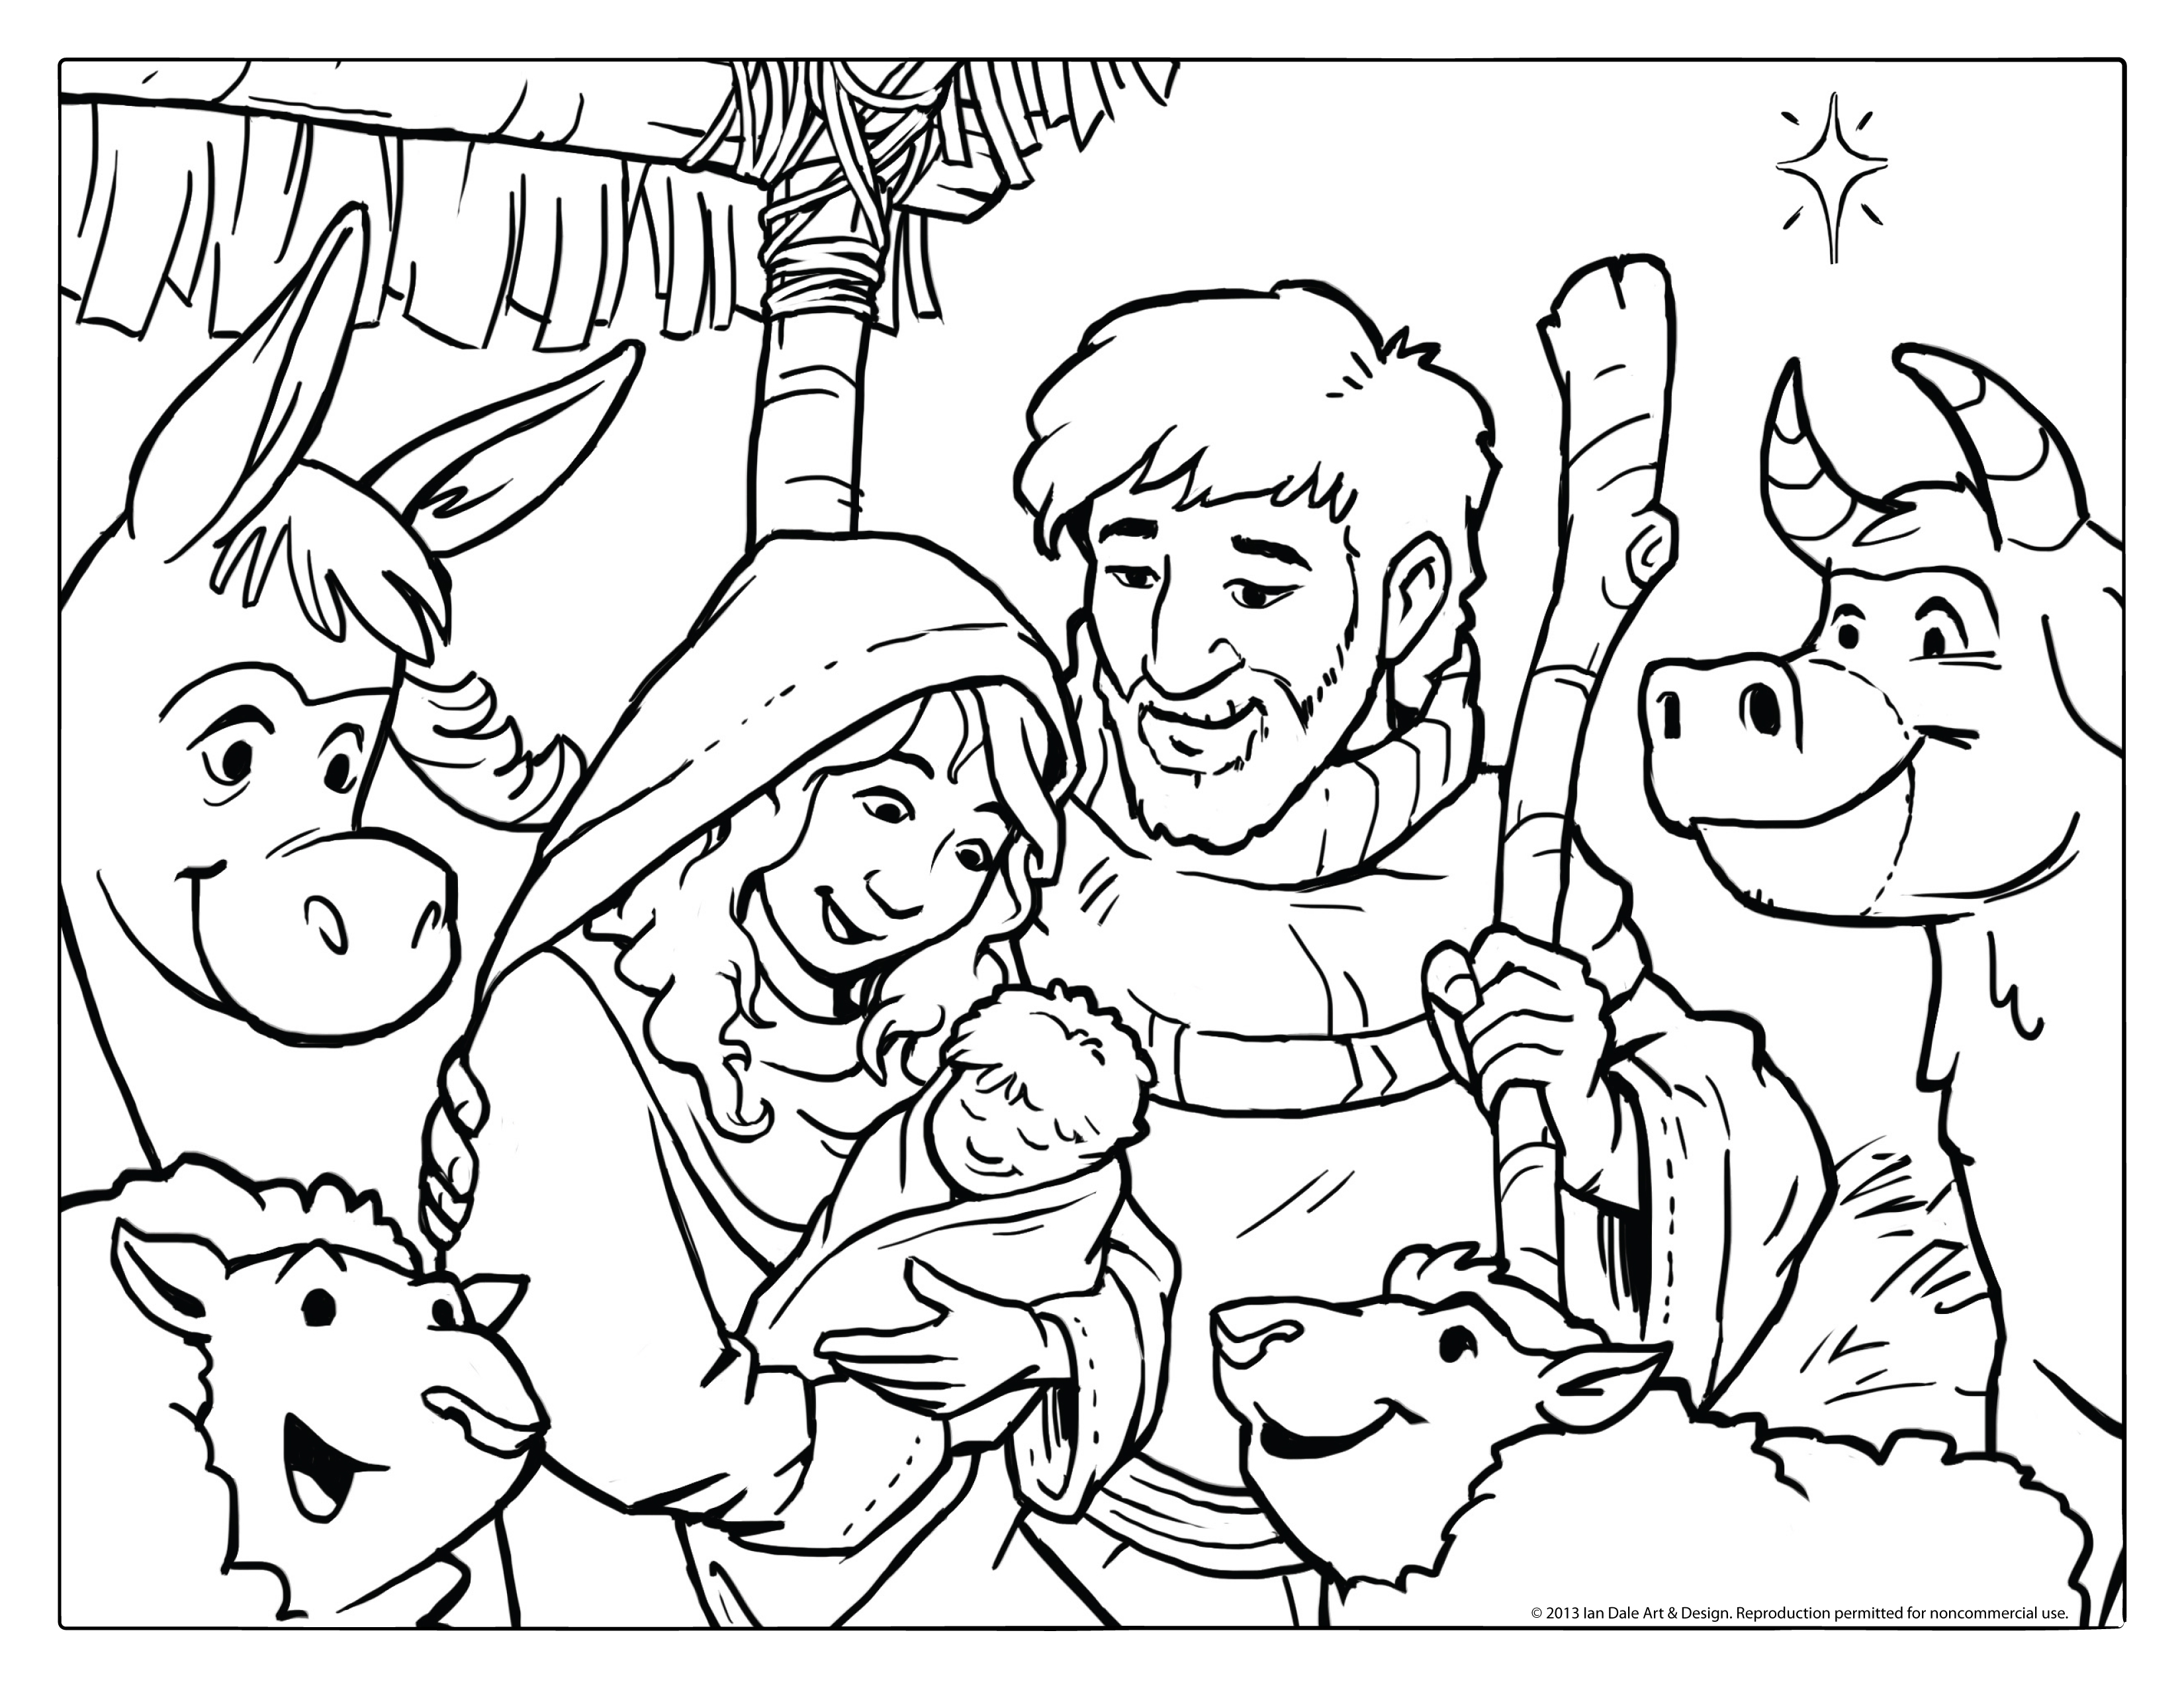 free christian christmas coloring pages printable christmas coloring page wallpapers9 printable free christian coloring pages christmas